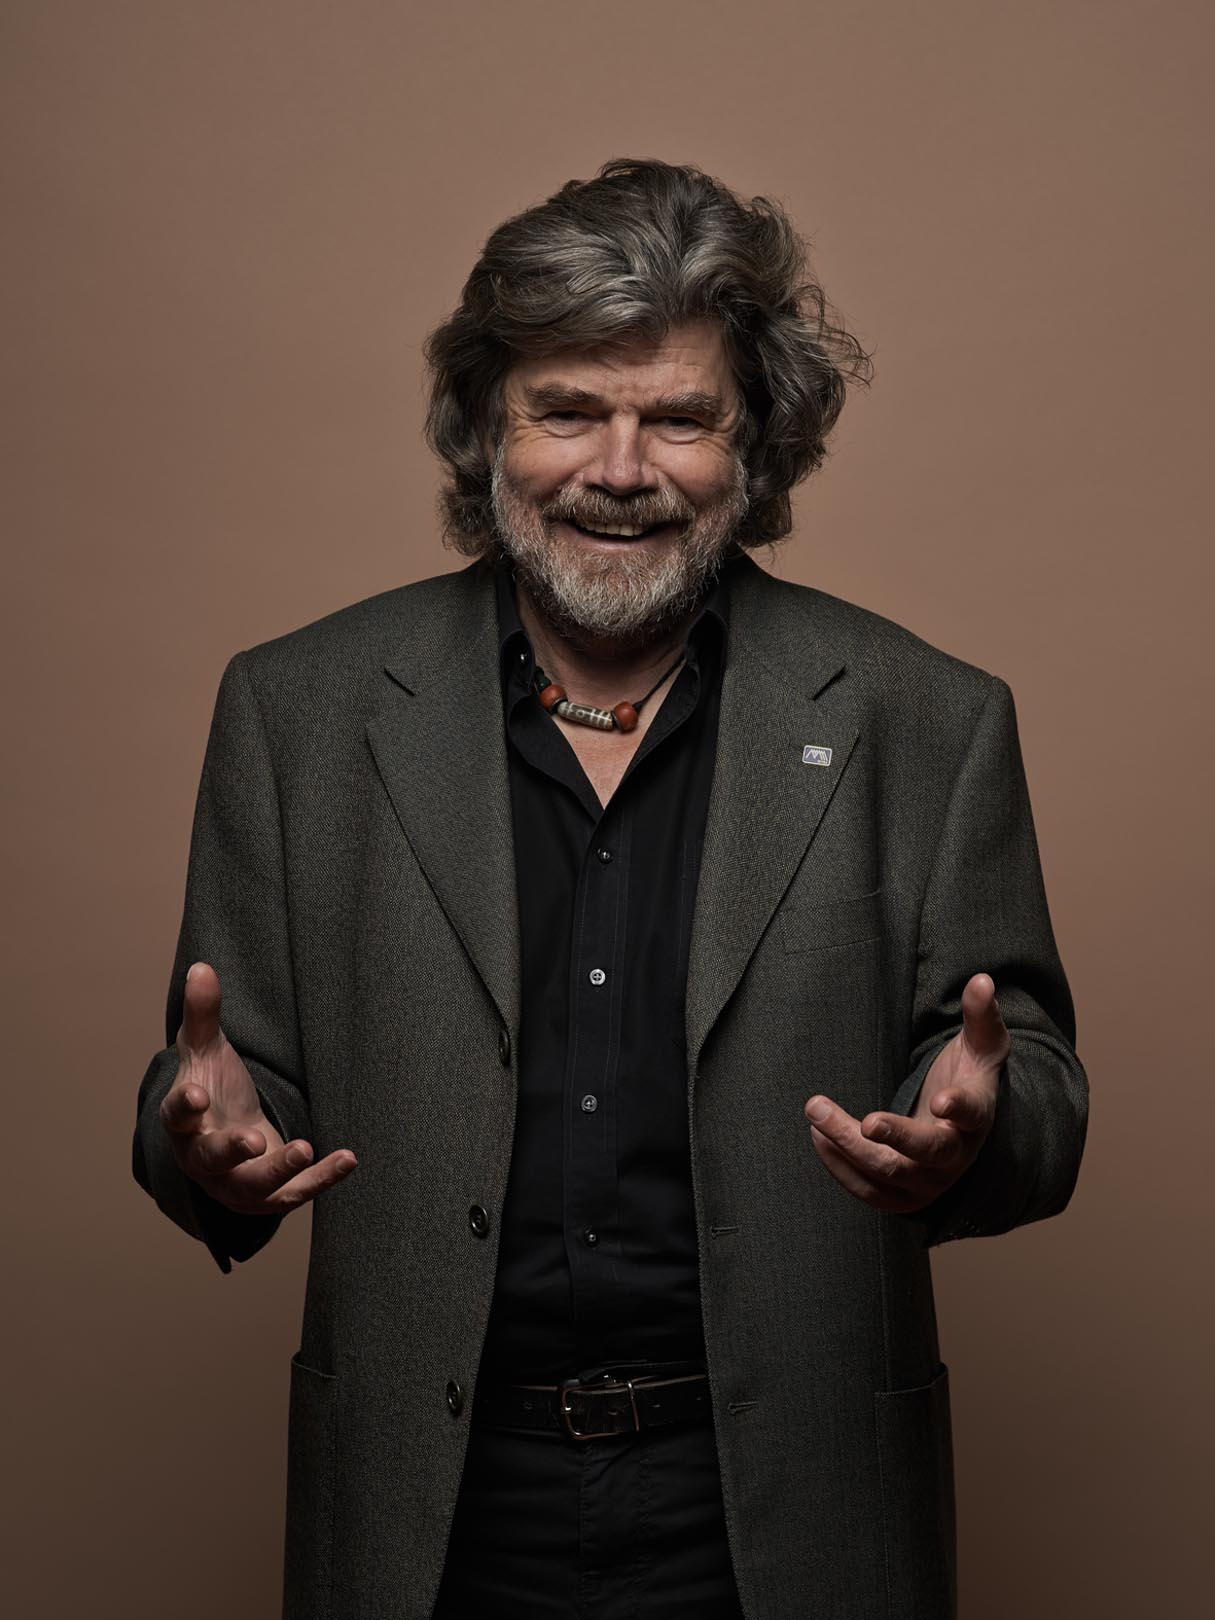 SKY TALK - Reinhold Messner